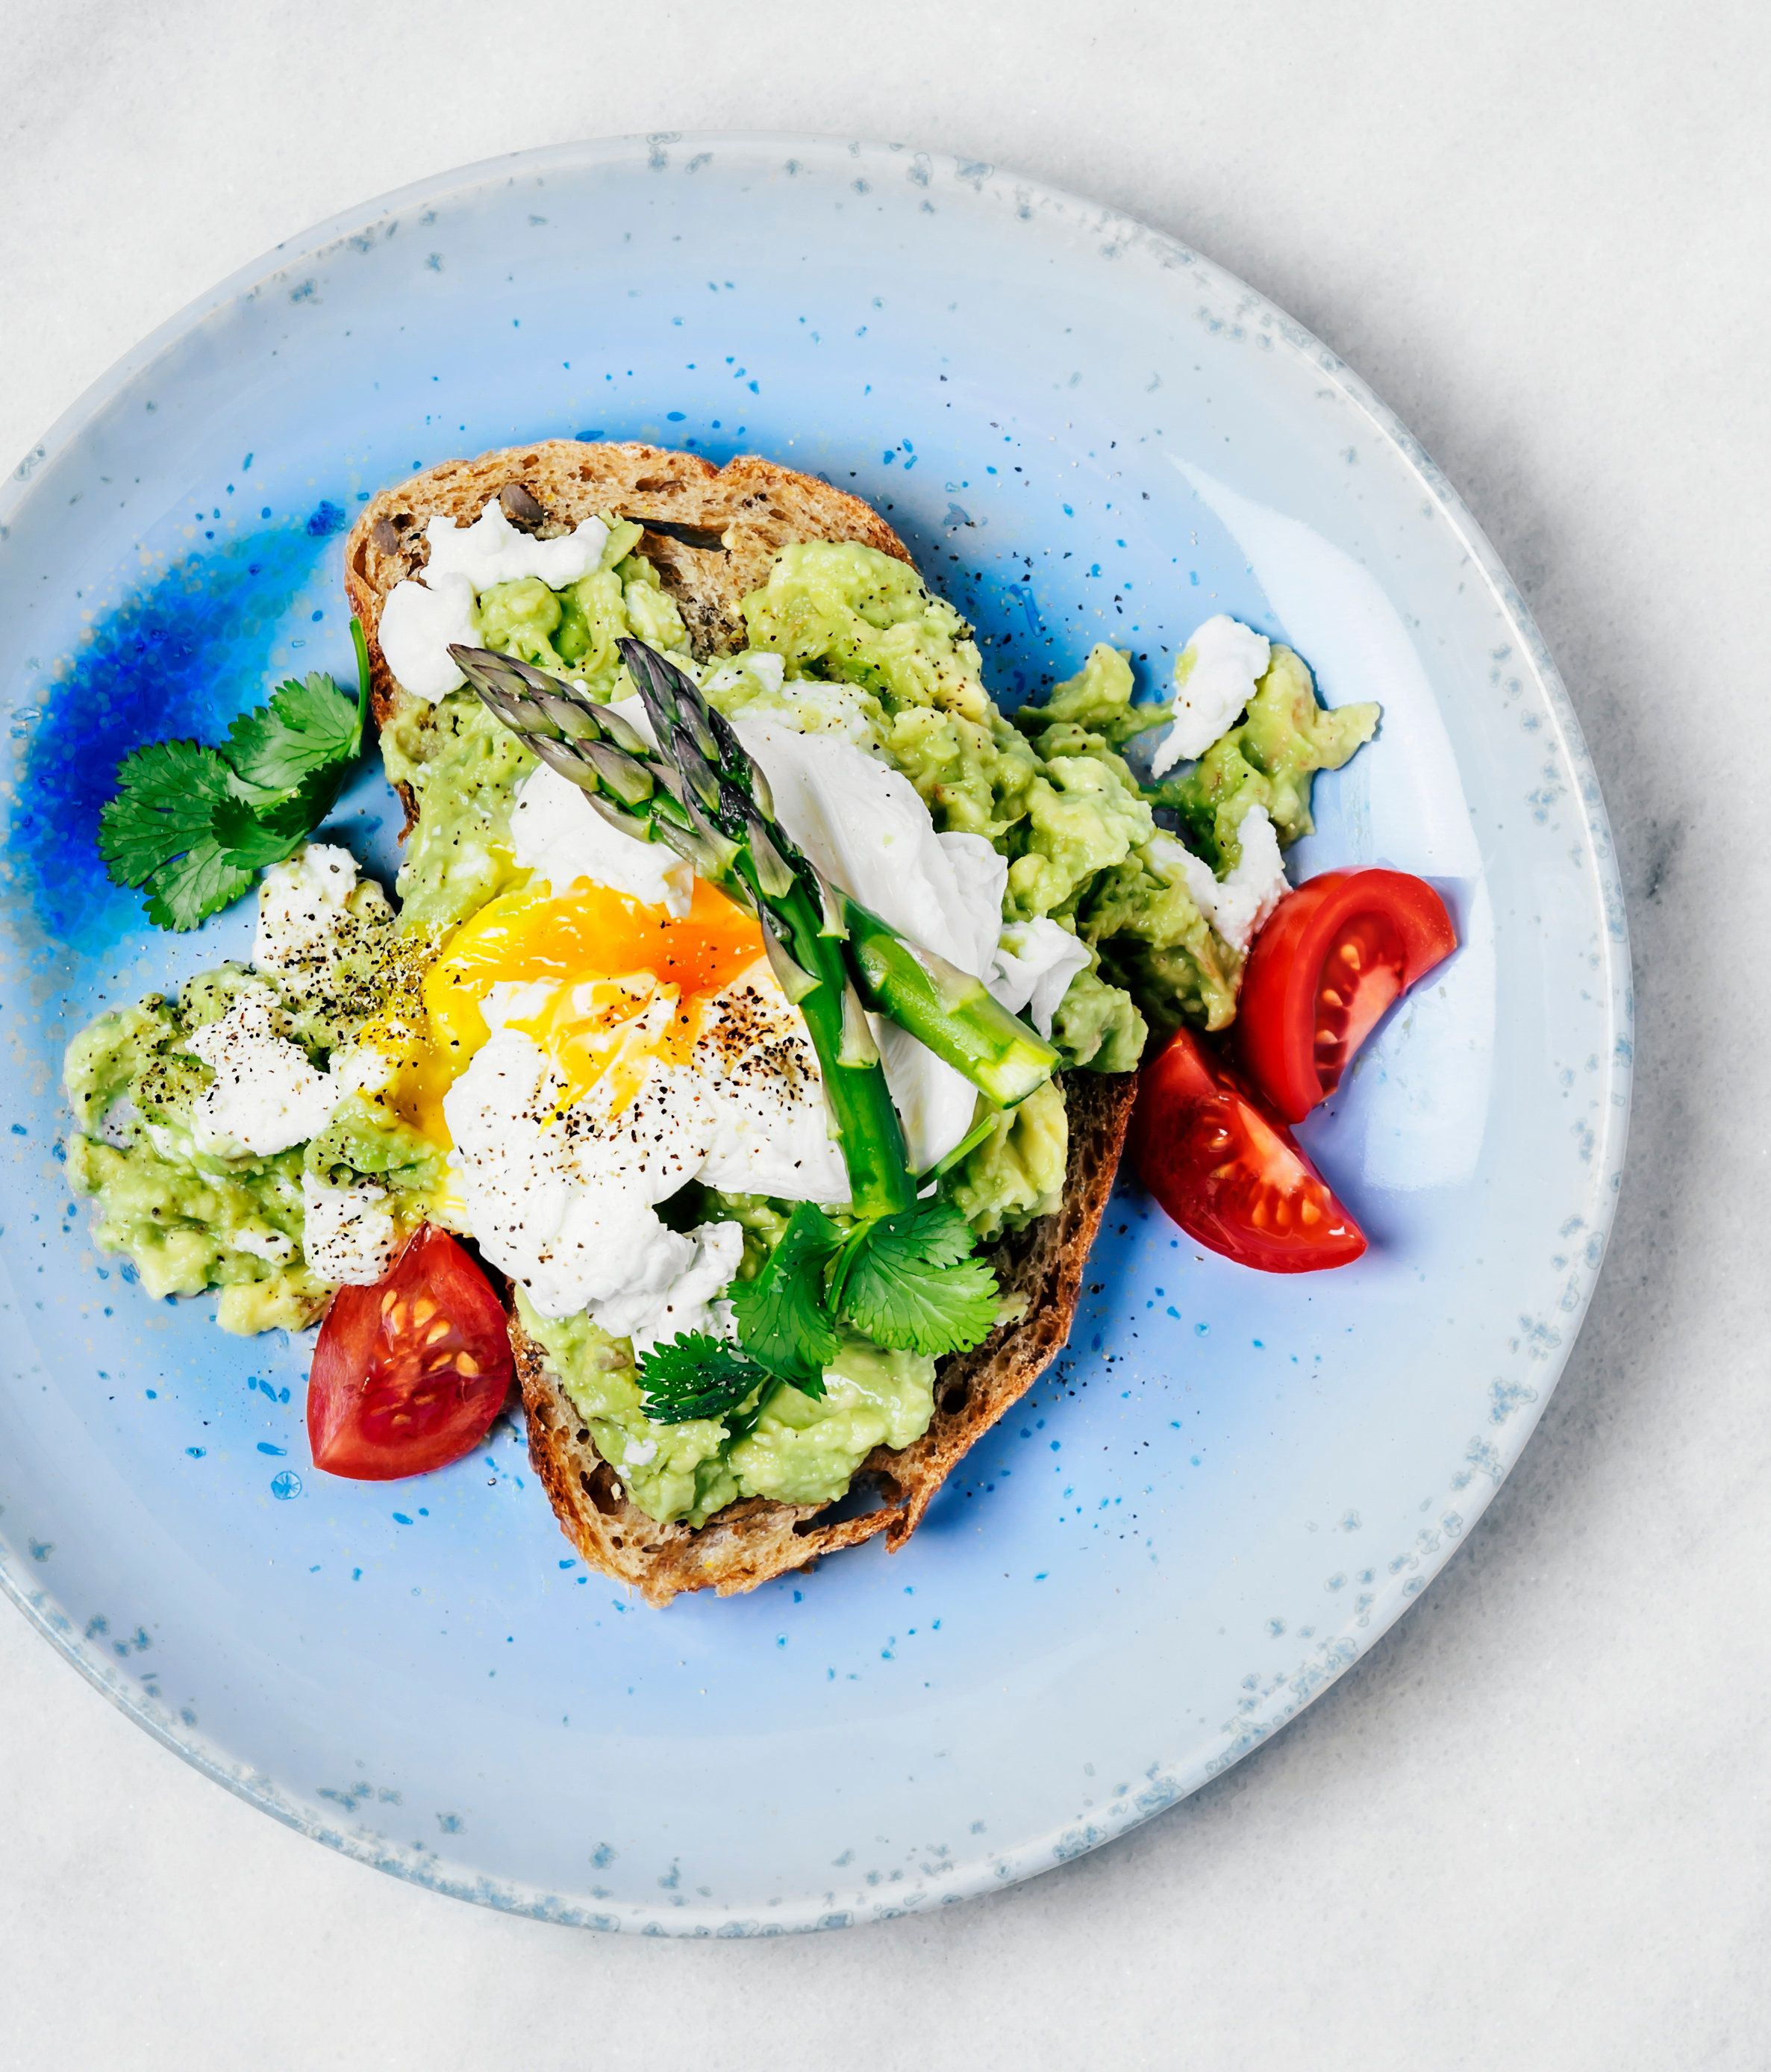 Sandwich with avocado, poached eggs, tomatoes and asparagus on a blue plate on white background